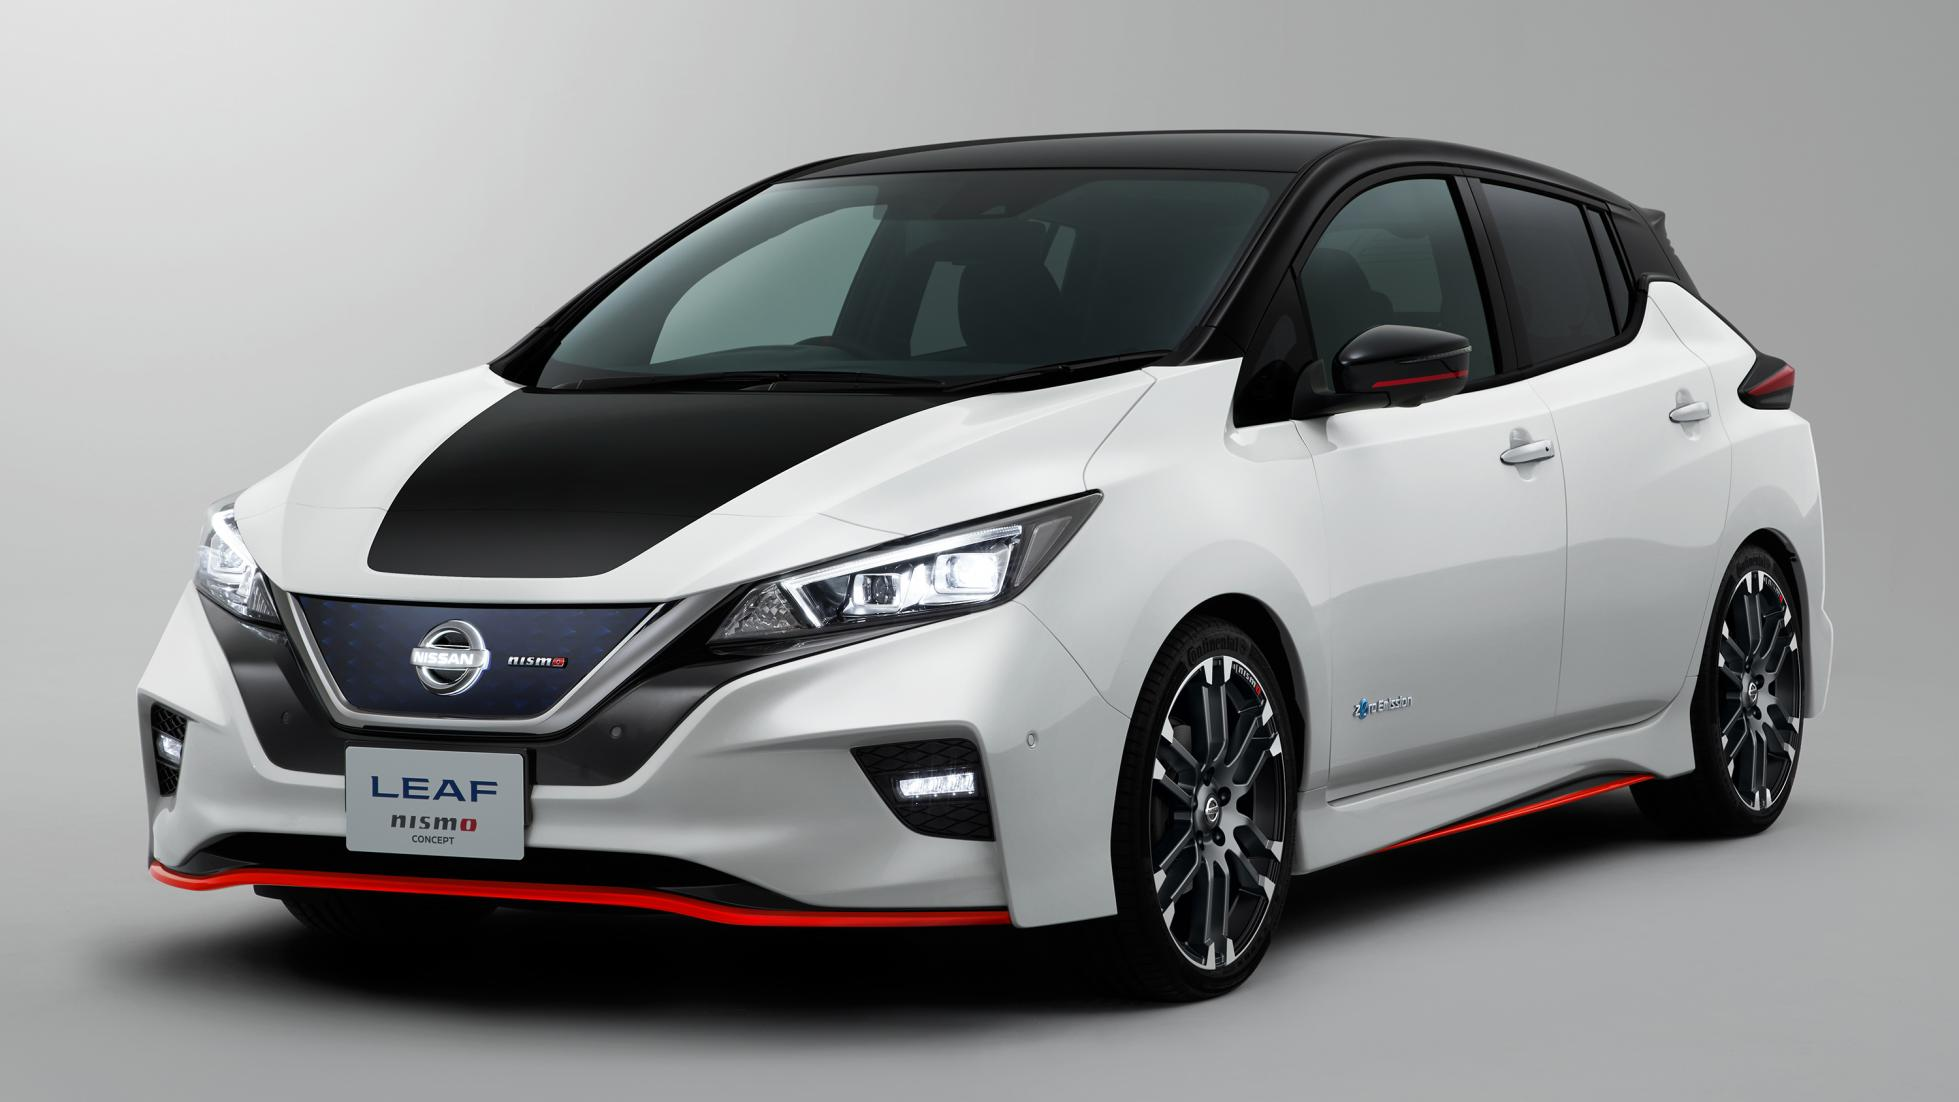 Nissan Leaf Nismo concept brings better handling and aerodynamics